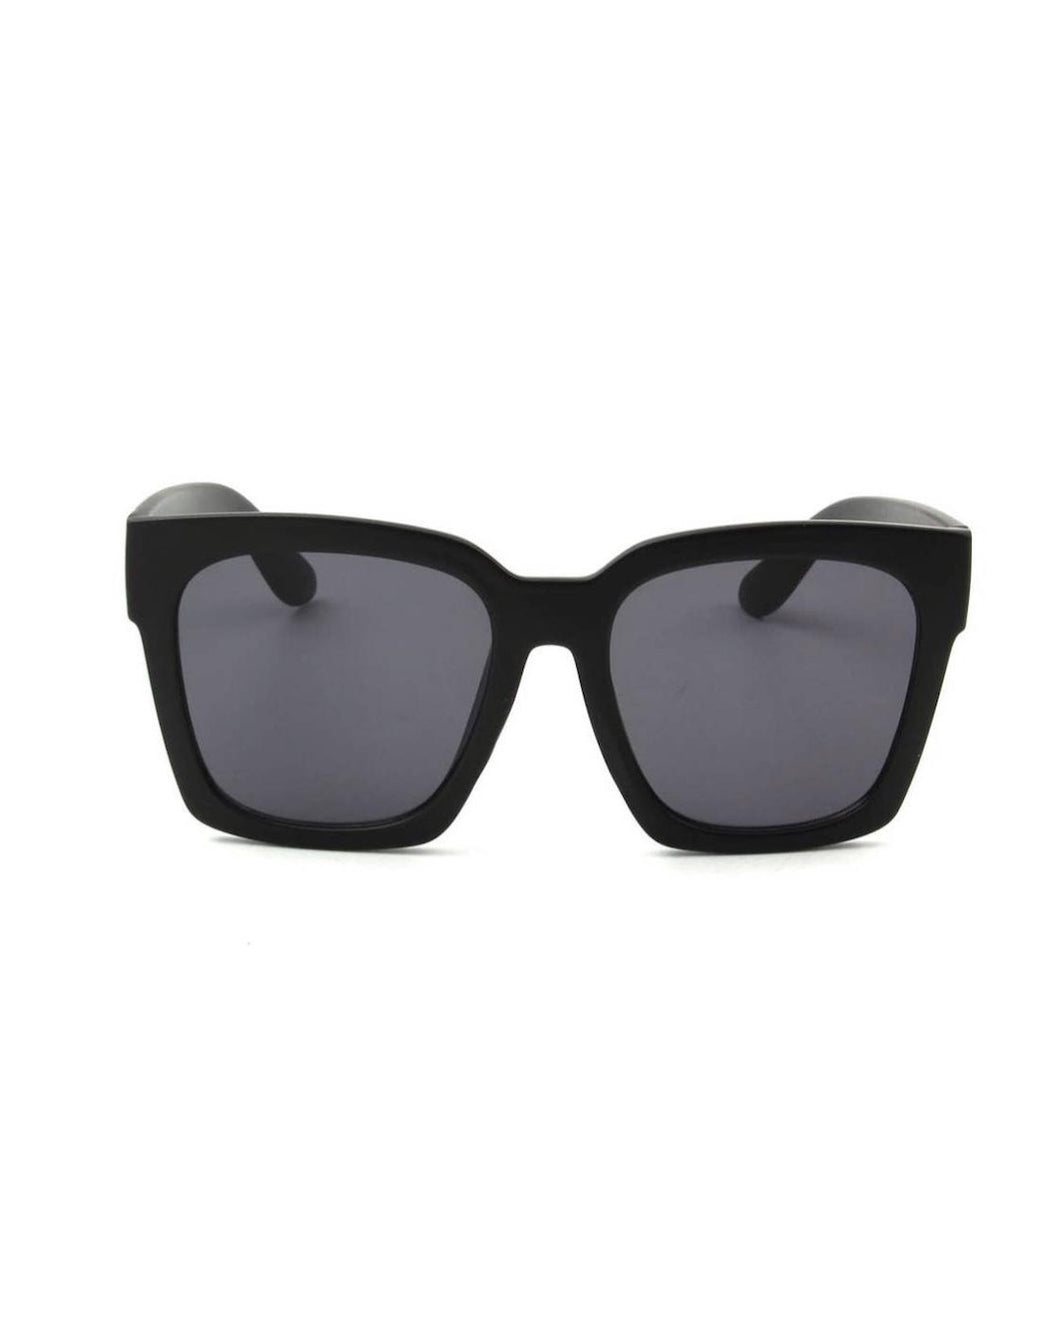 SQUARE OVERSIZED SUNGLASSES MATTE BLACK